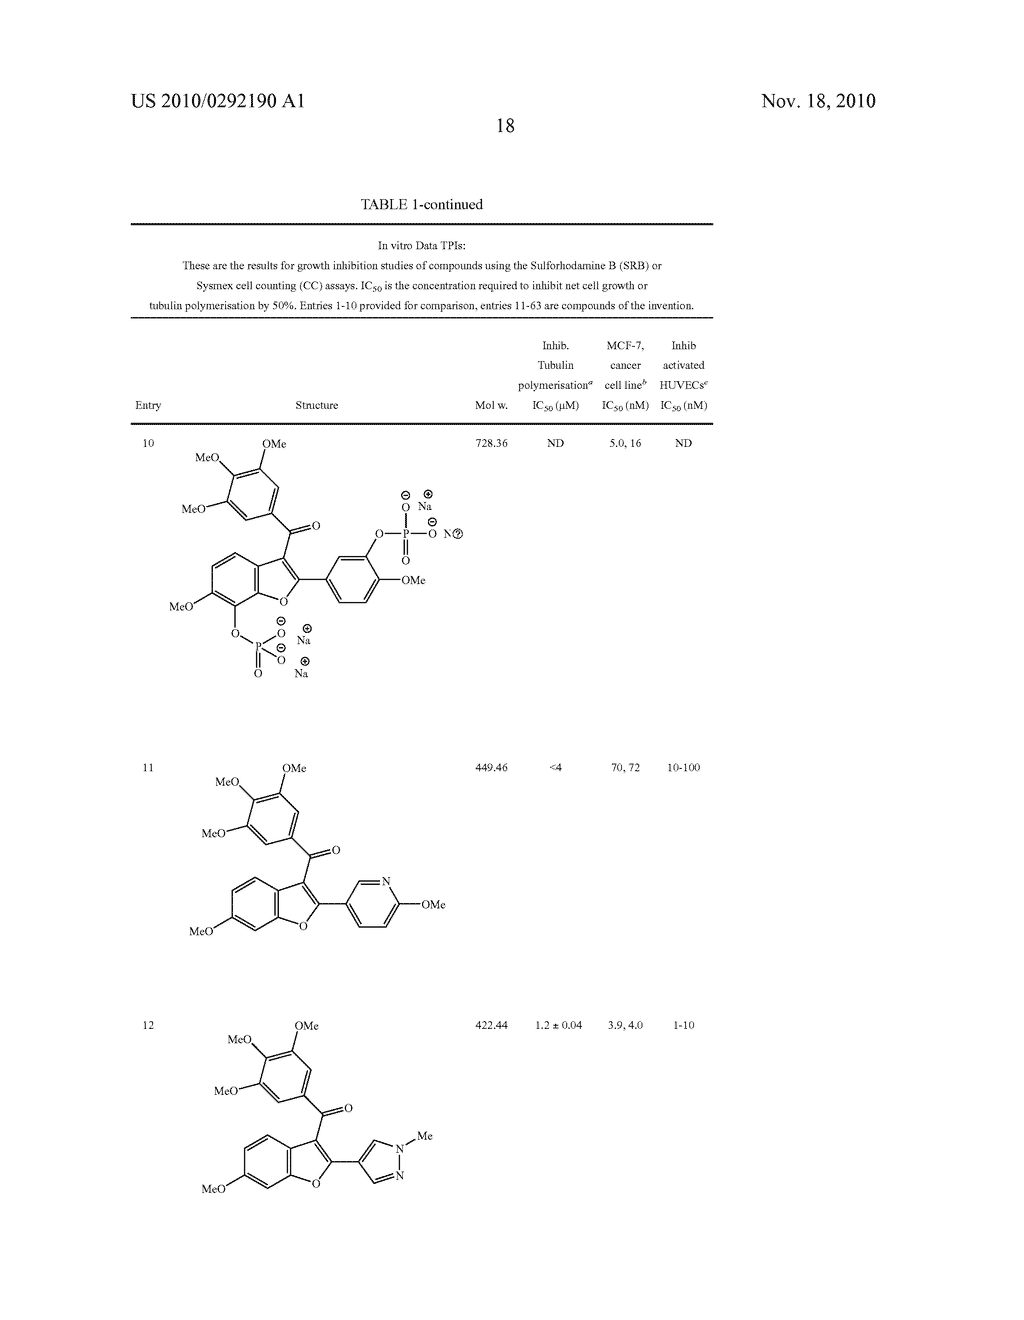 NOVEL TUBULIN POLYMERISATION INHIBITORS - diagram, schematic, and image 20